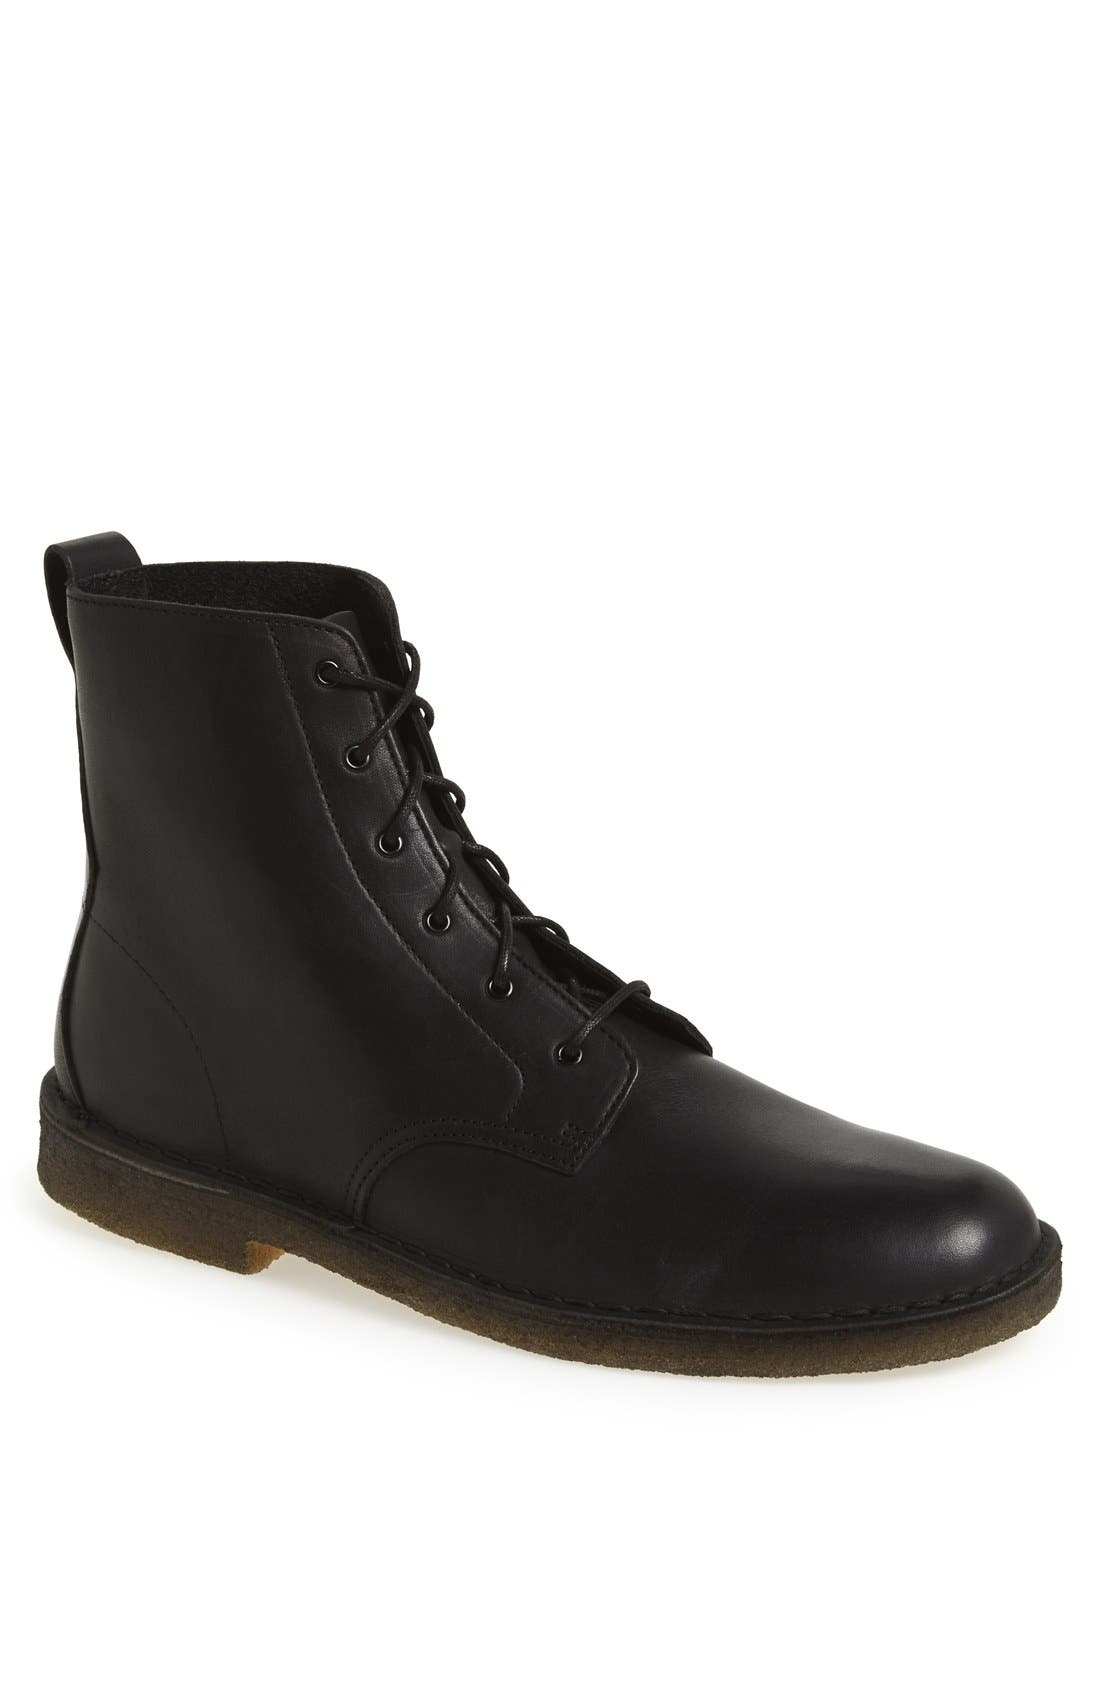 Alternate Image 1 Selected - Clarks 'Desert Mali' Plain Boot (Men)